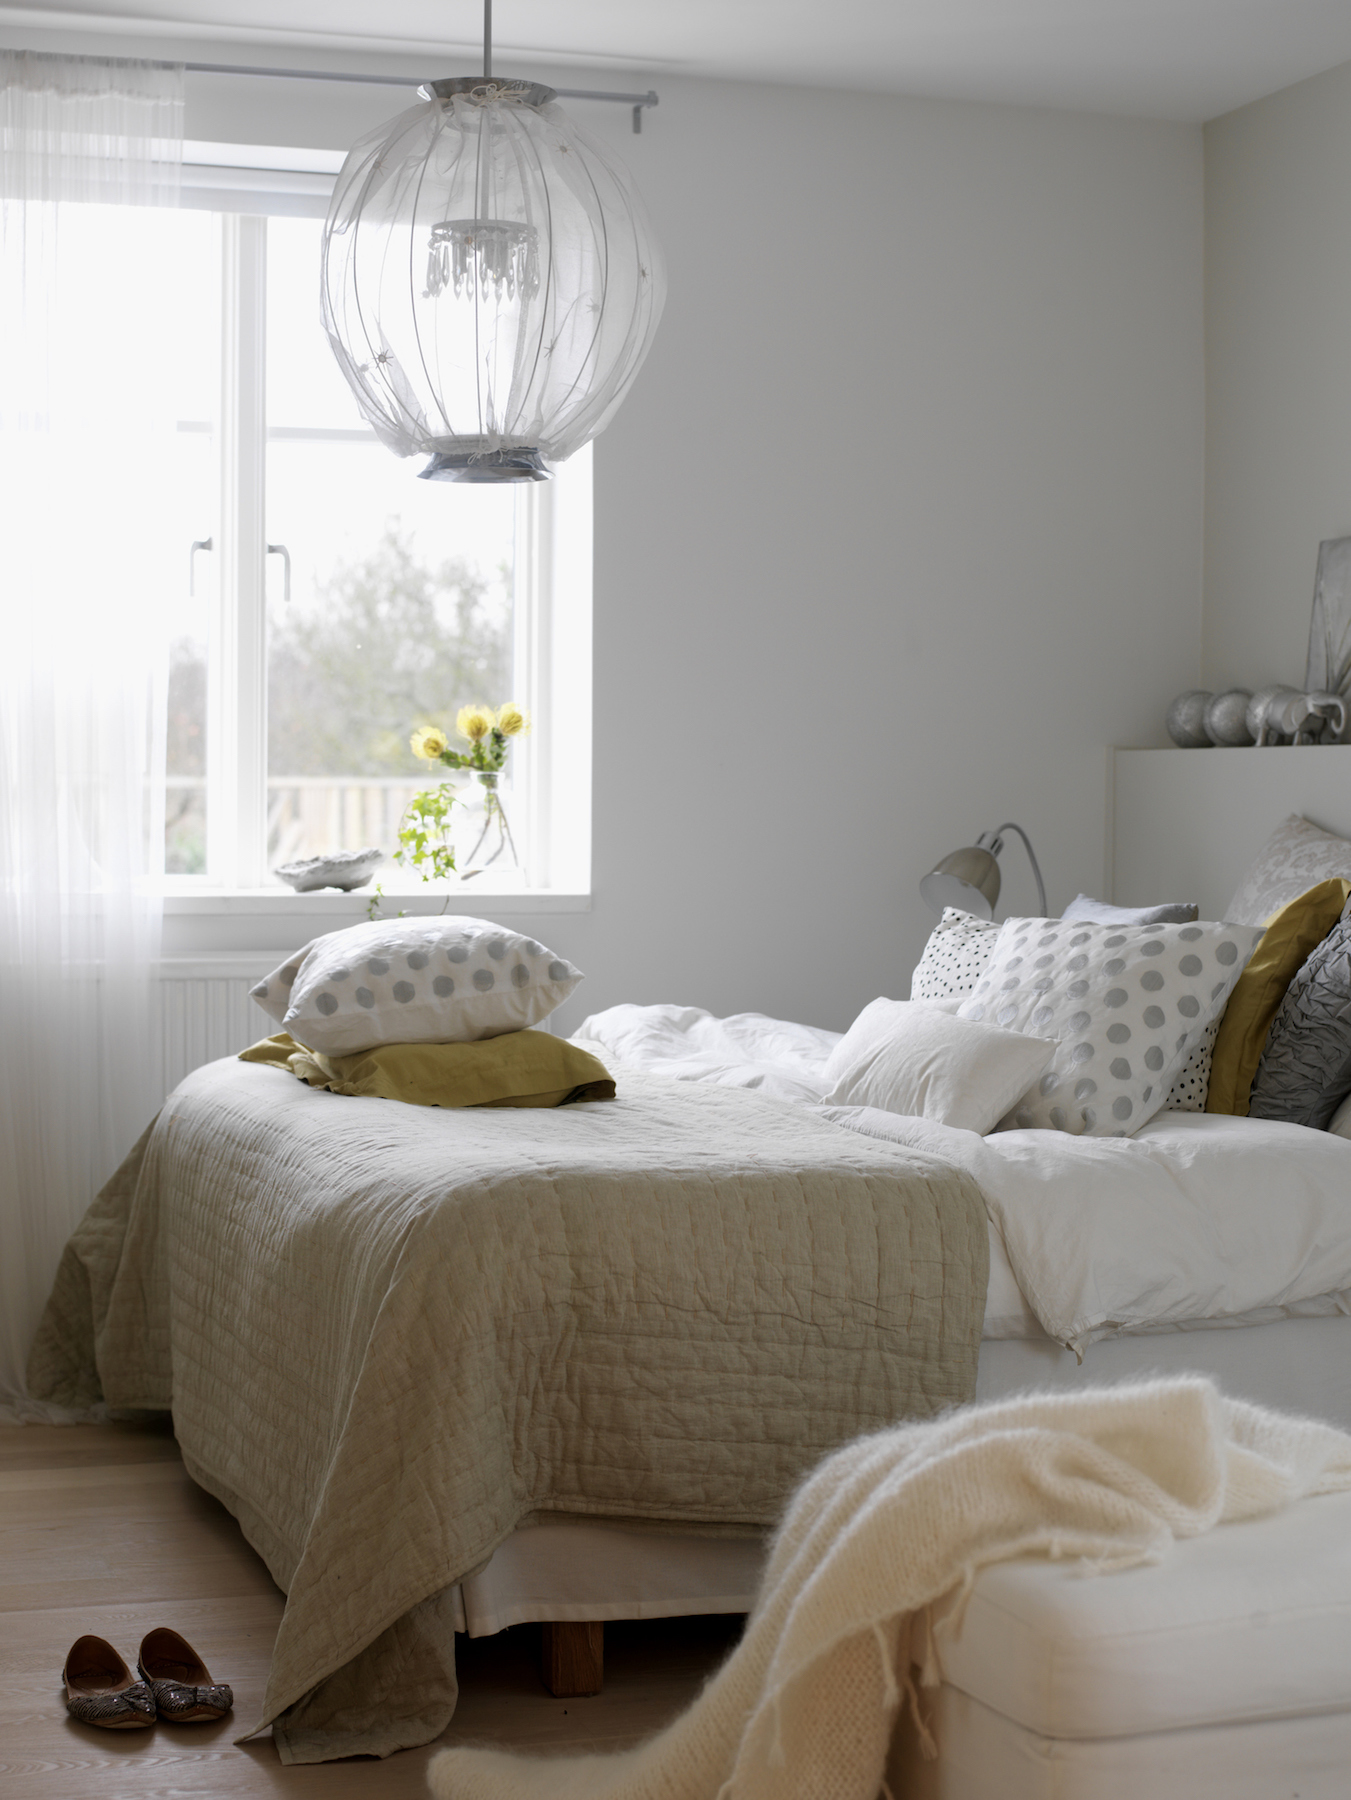 20 Ways to Cozy Up Your Home Before the Cold Weather Comes